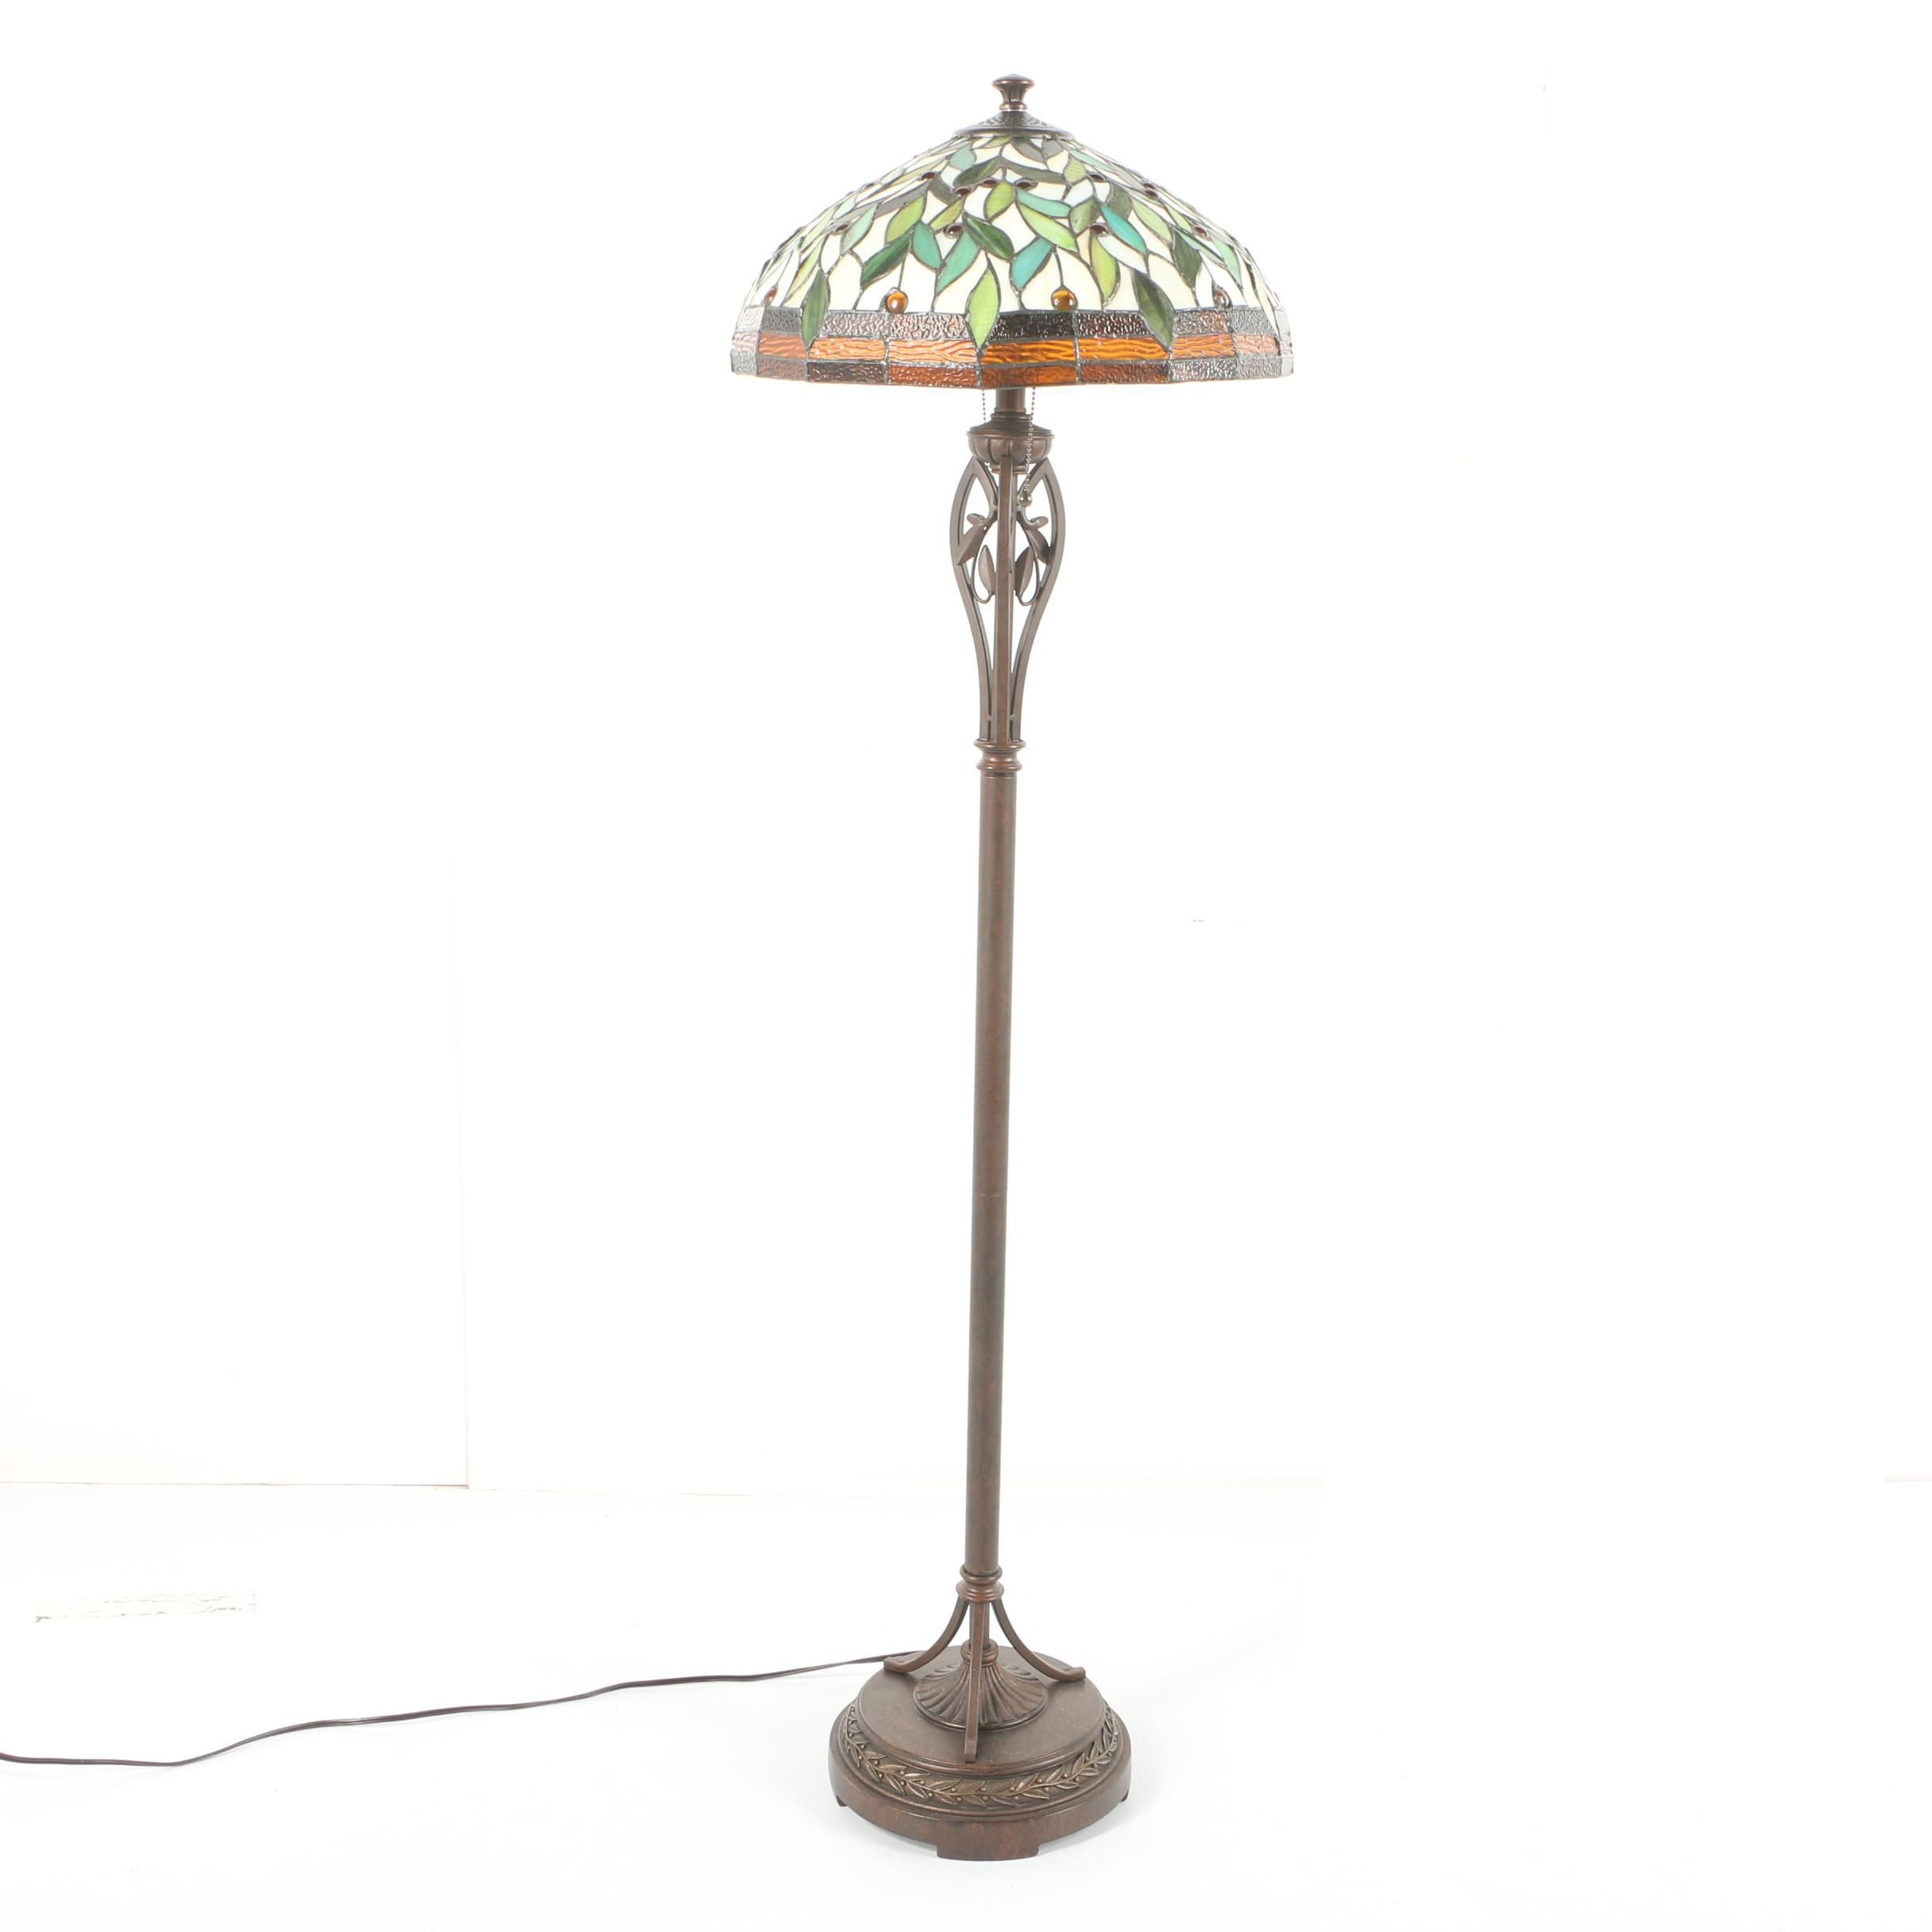 Slag and Stained Glass Floor Lamp